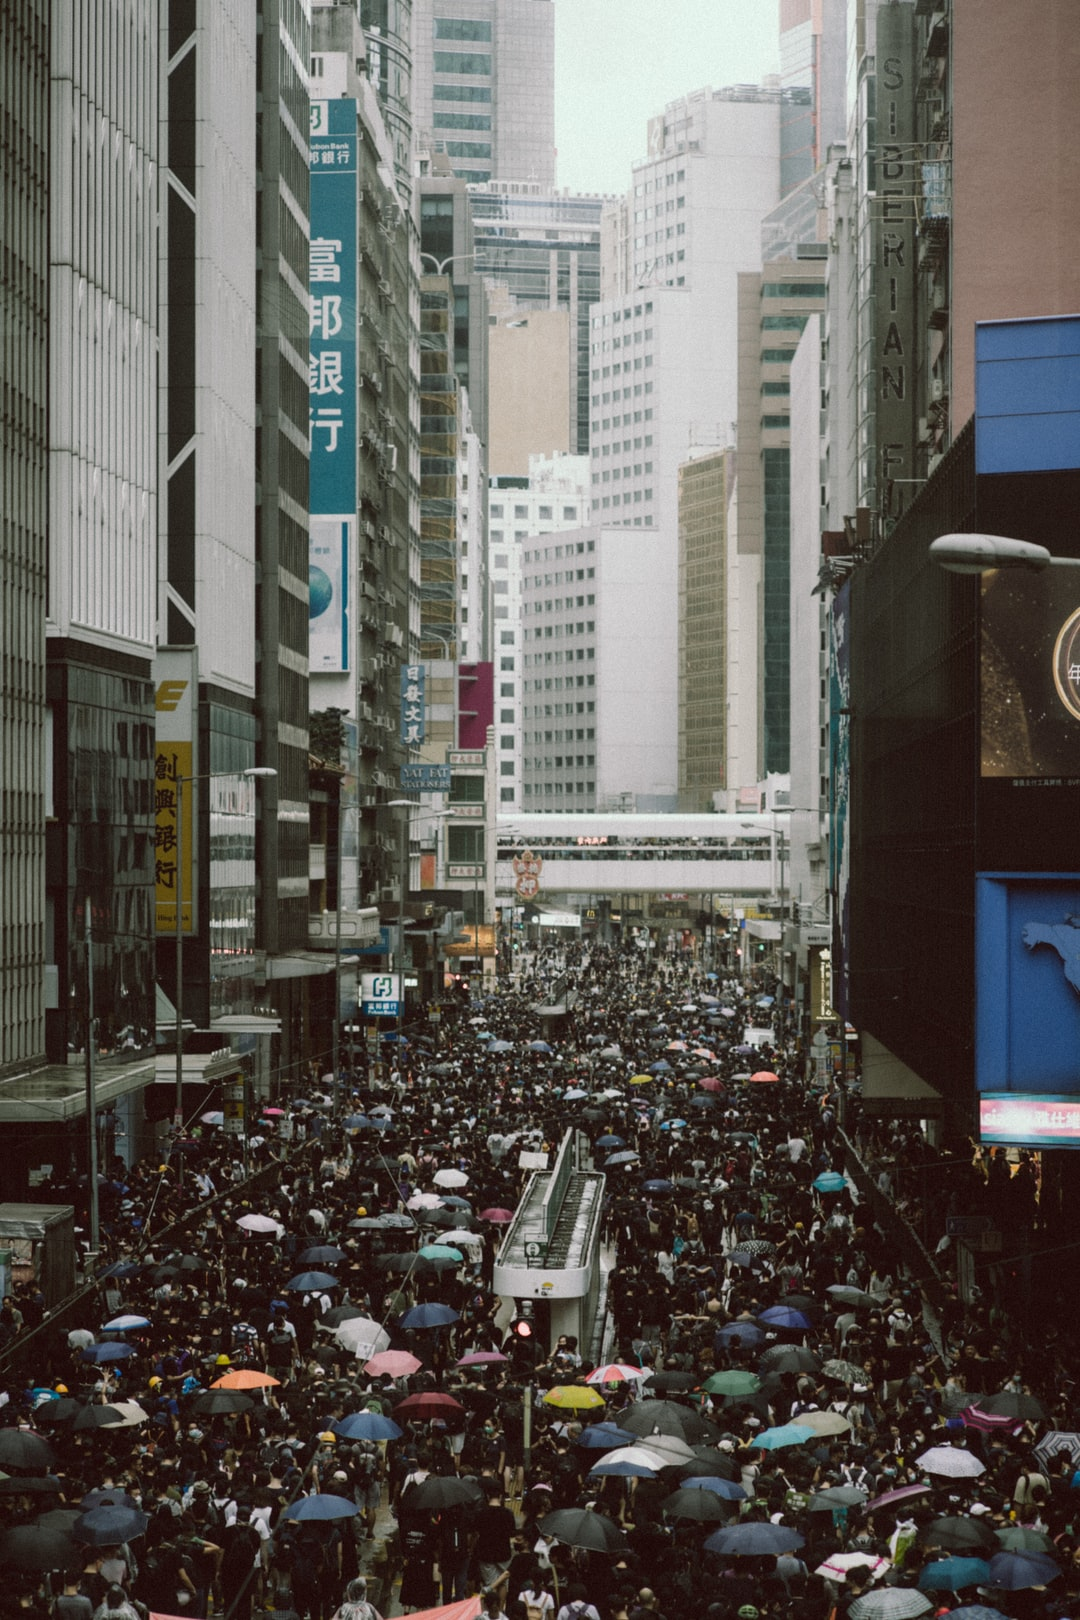 Tensions rise in Hong Kong after the government ban a protest and deny the protesters everything, forcing them to fight to the bitter end, convinced they have nothing to lose, 31/08/2019